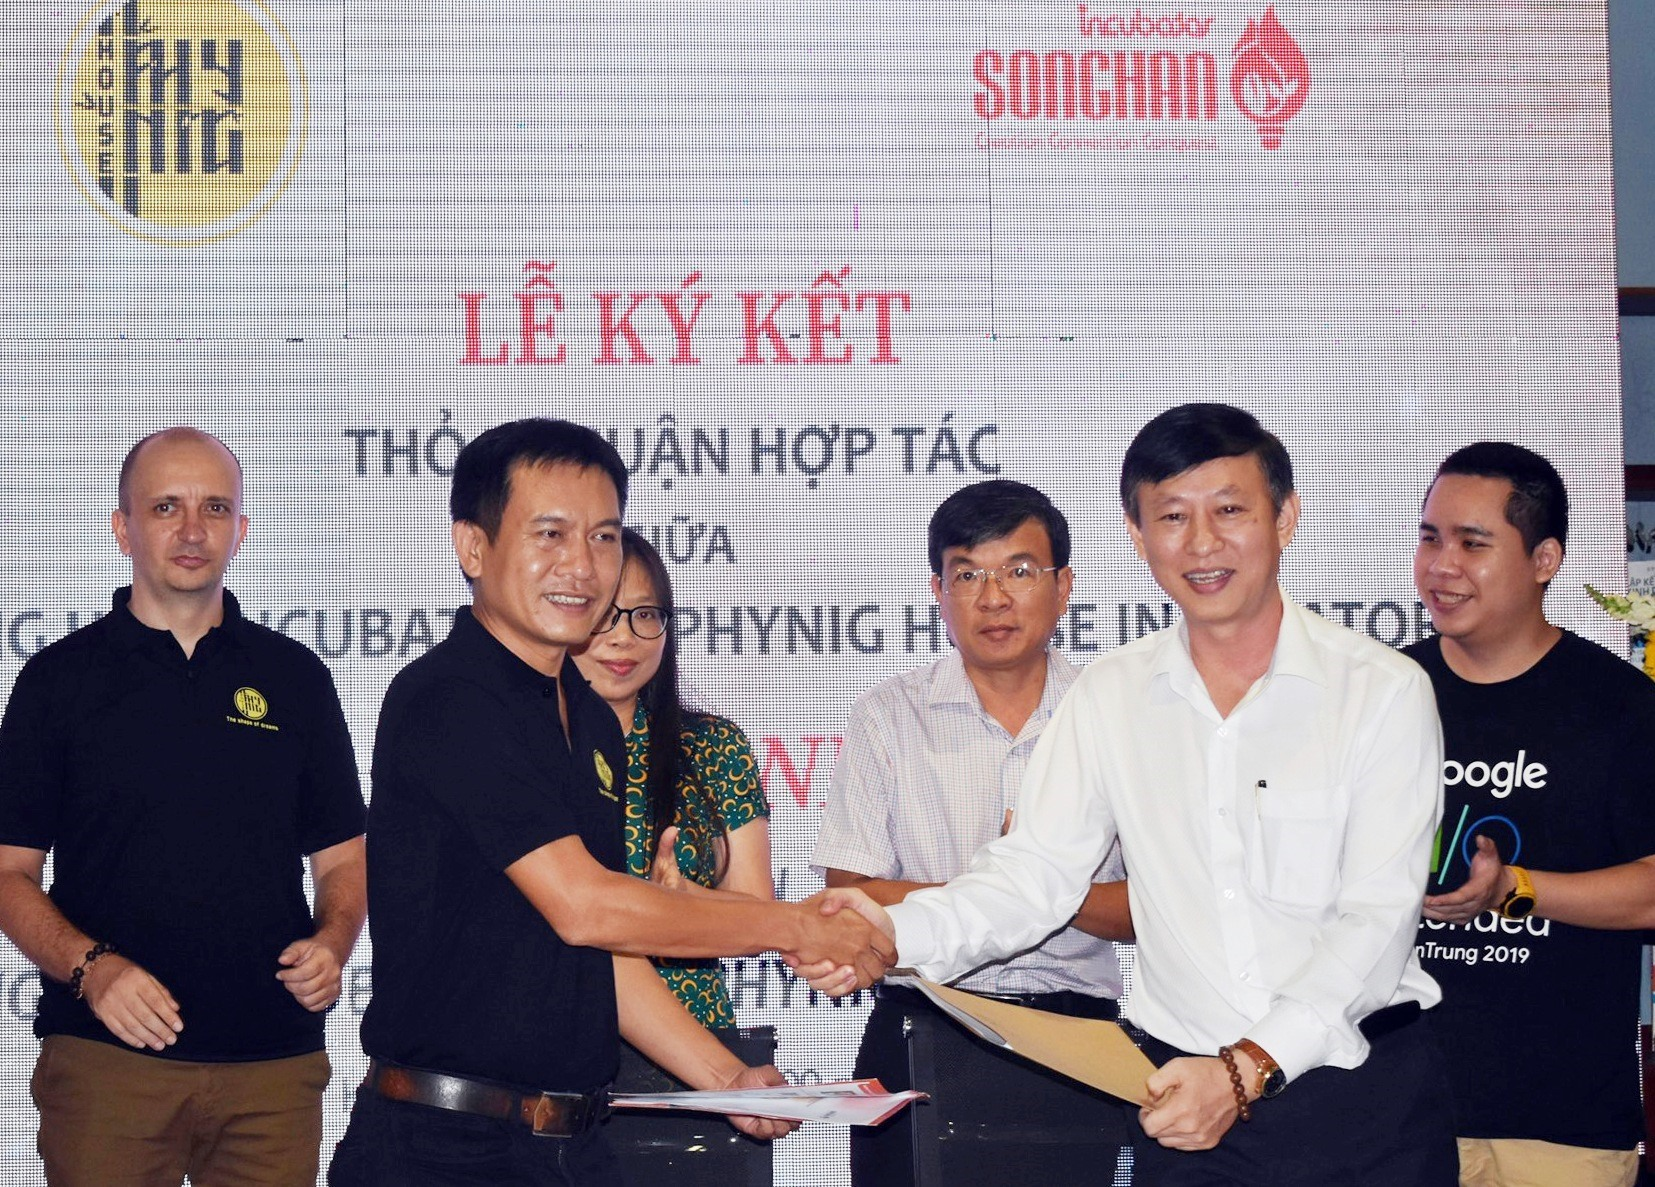 Signing ceremony of the cooperation agreement between Song Han Incubation Center and Phyning House.